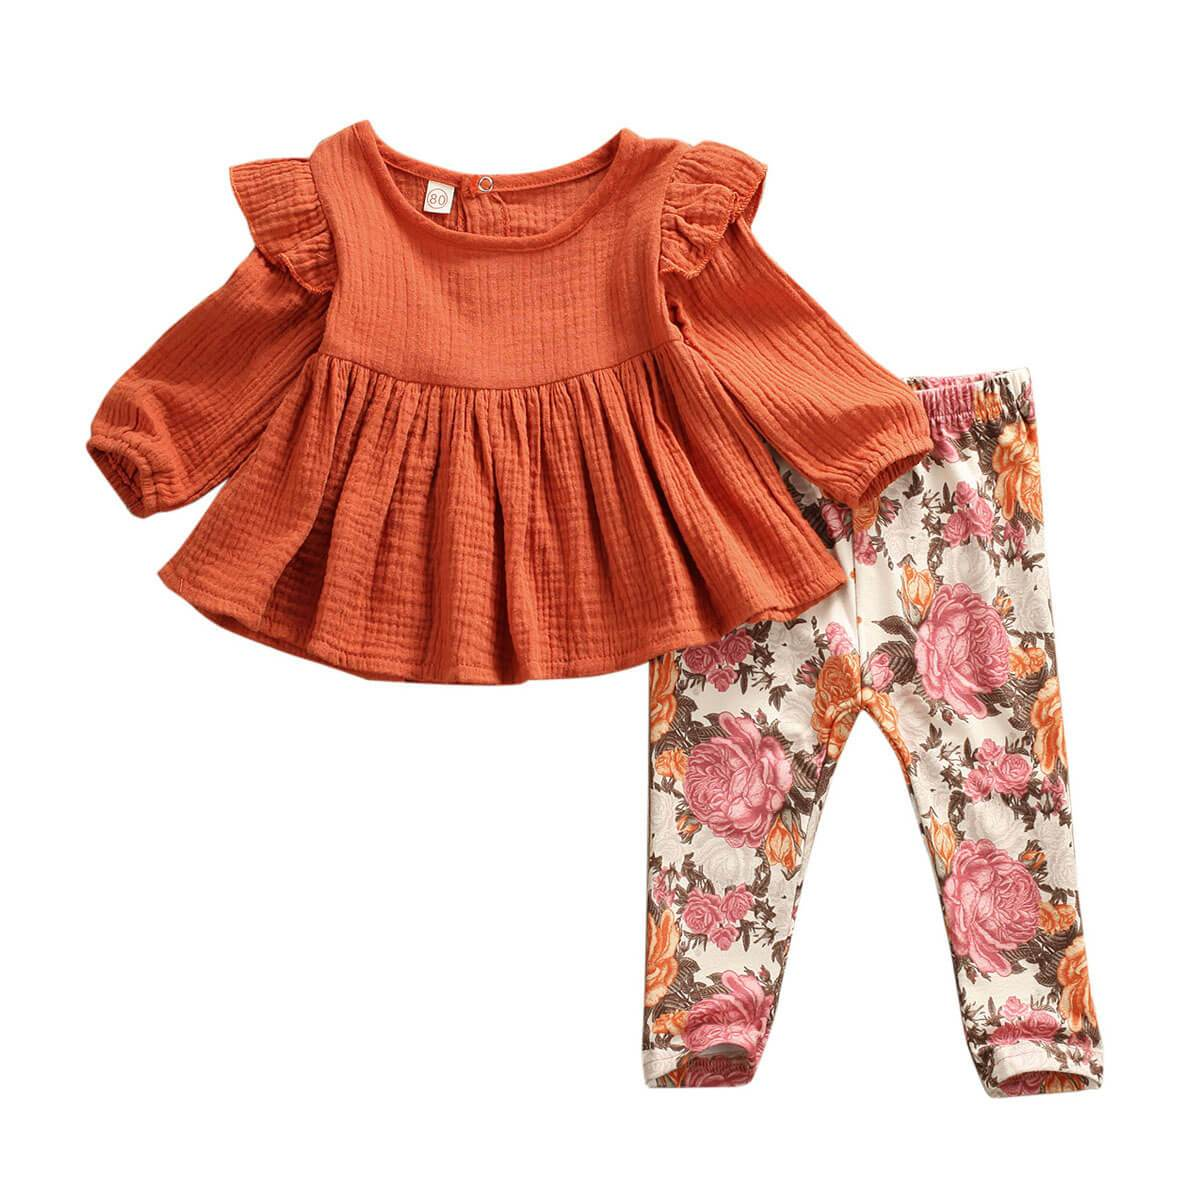 Ruffled Floral Set